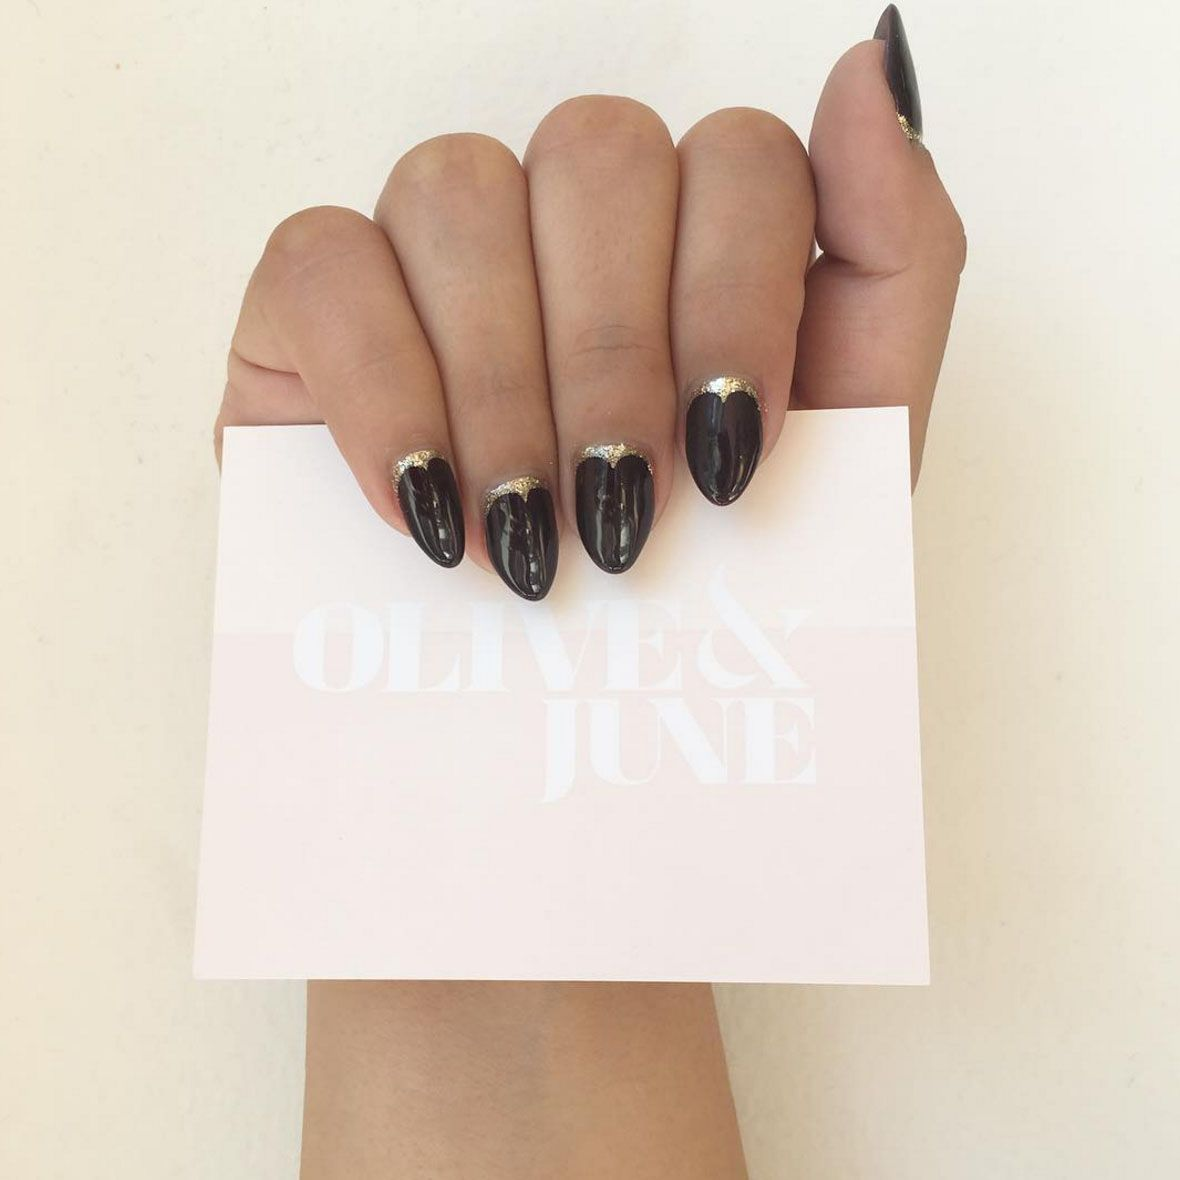 """<p>The manicure version of your holiday LBD: this reverse French adorned with scalloped glitter.</p><p><a href=""""https://www.instagram.com/p/BLHnZnthJOt/?taken-by=oliveandjune&amp&#x3B;hl=en"""" target=""""_blank"""" data-tracking-id=""""recirc-text-link"""">@oliveandjune</a></p>"""